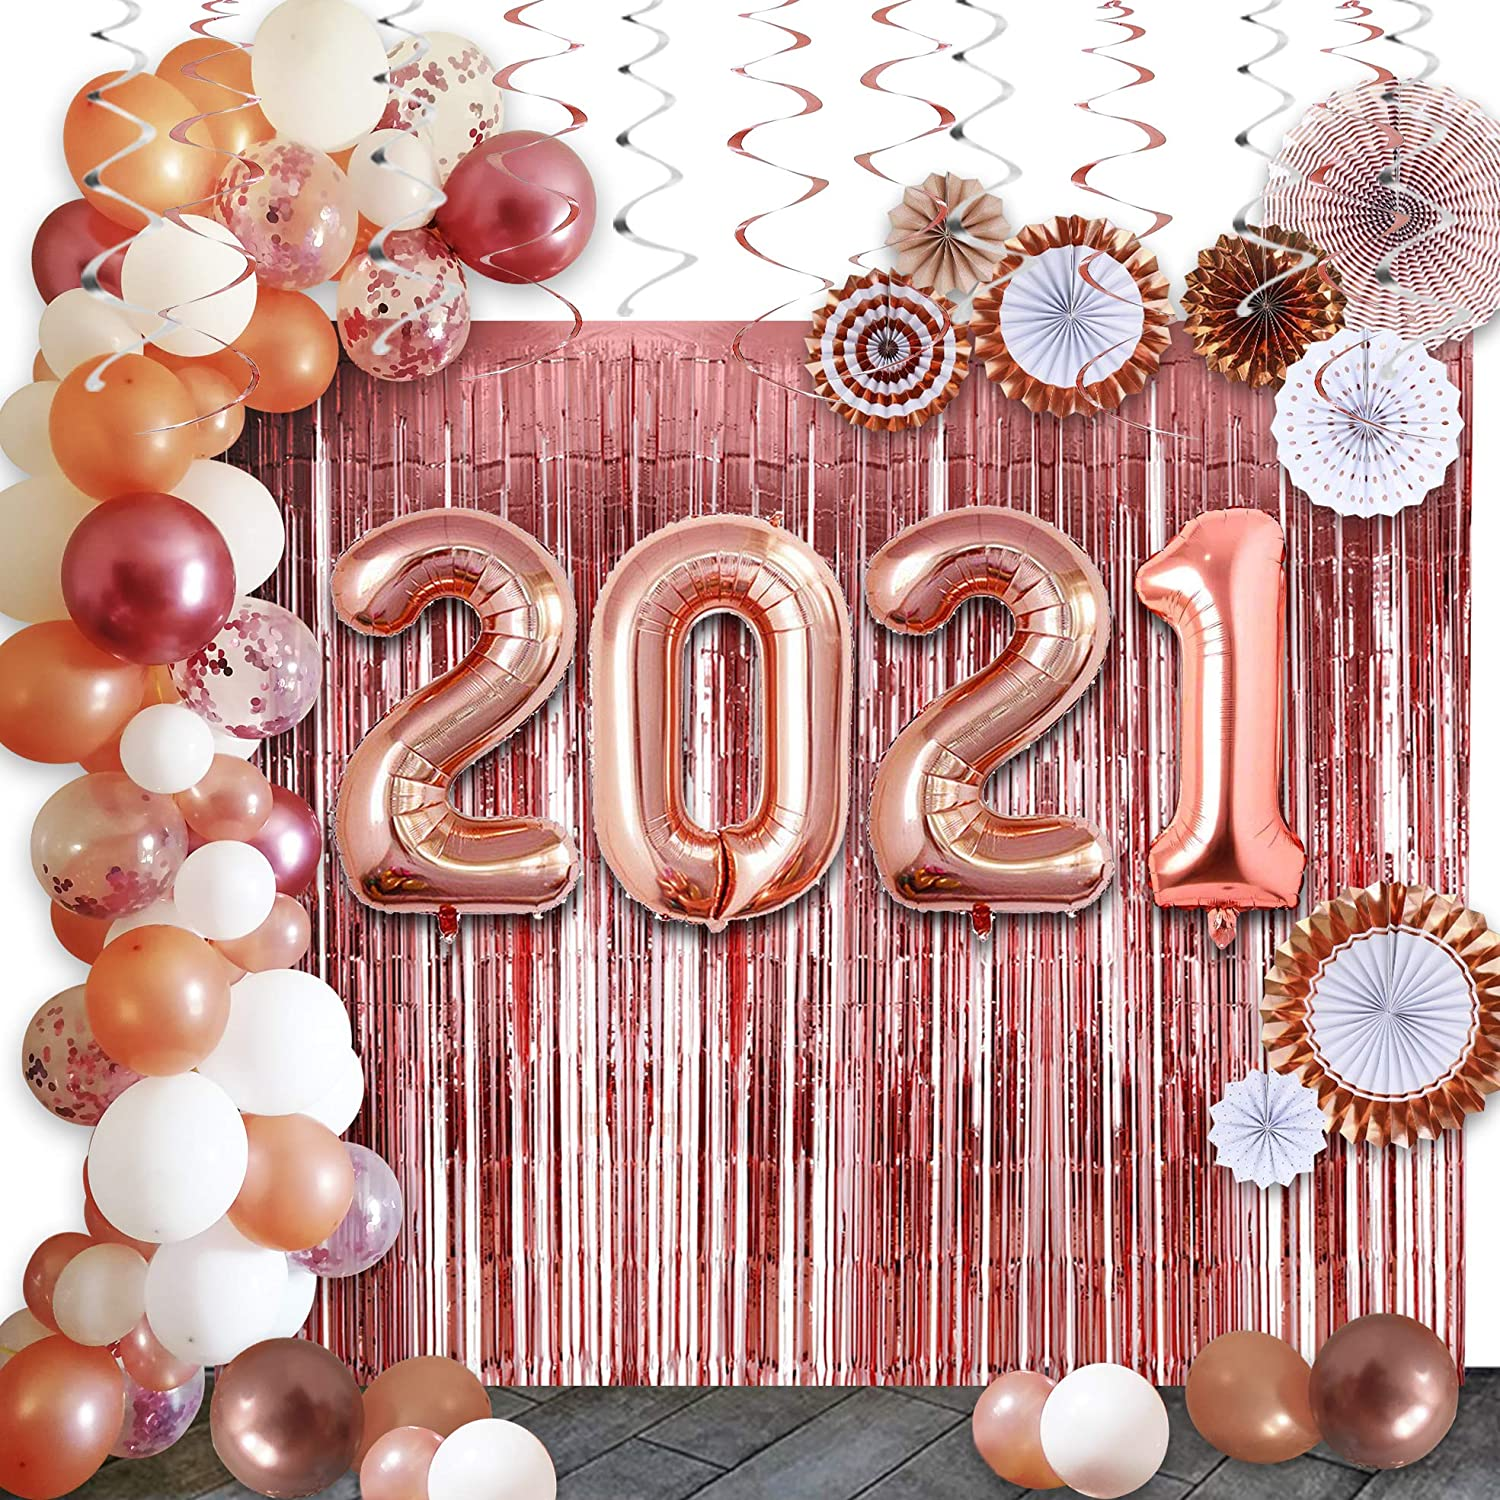 Amazon Com New Years Eve Party Supplies 2021 40in 2021 Balloons 90pcs Rose Gold Graduation Party Party Decorations Are Perfect For Your Grad Party Decor Toys Games